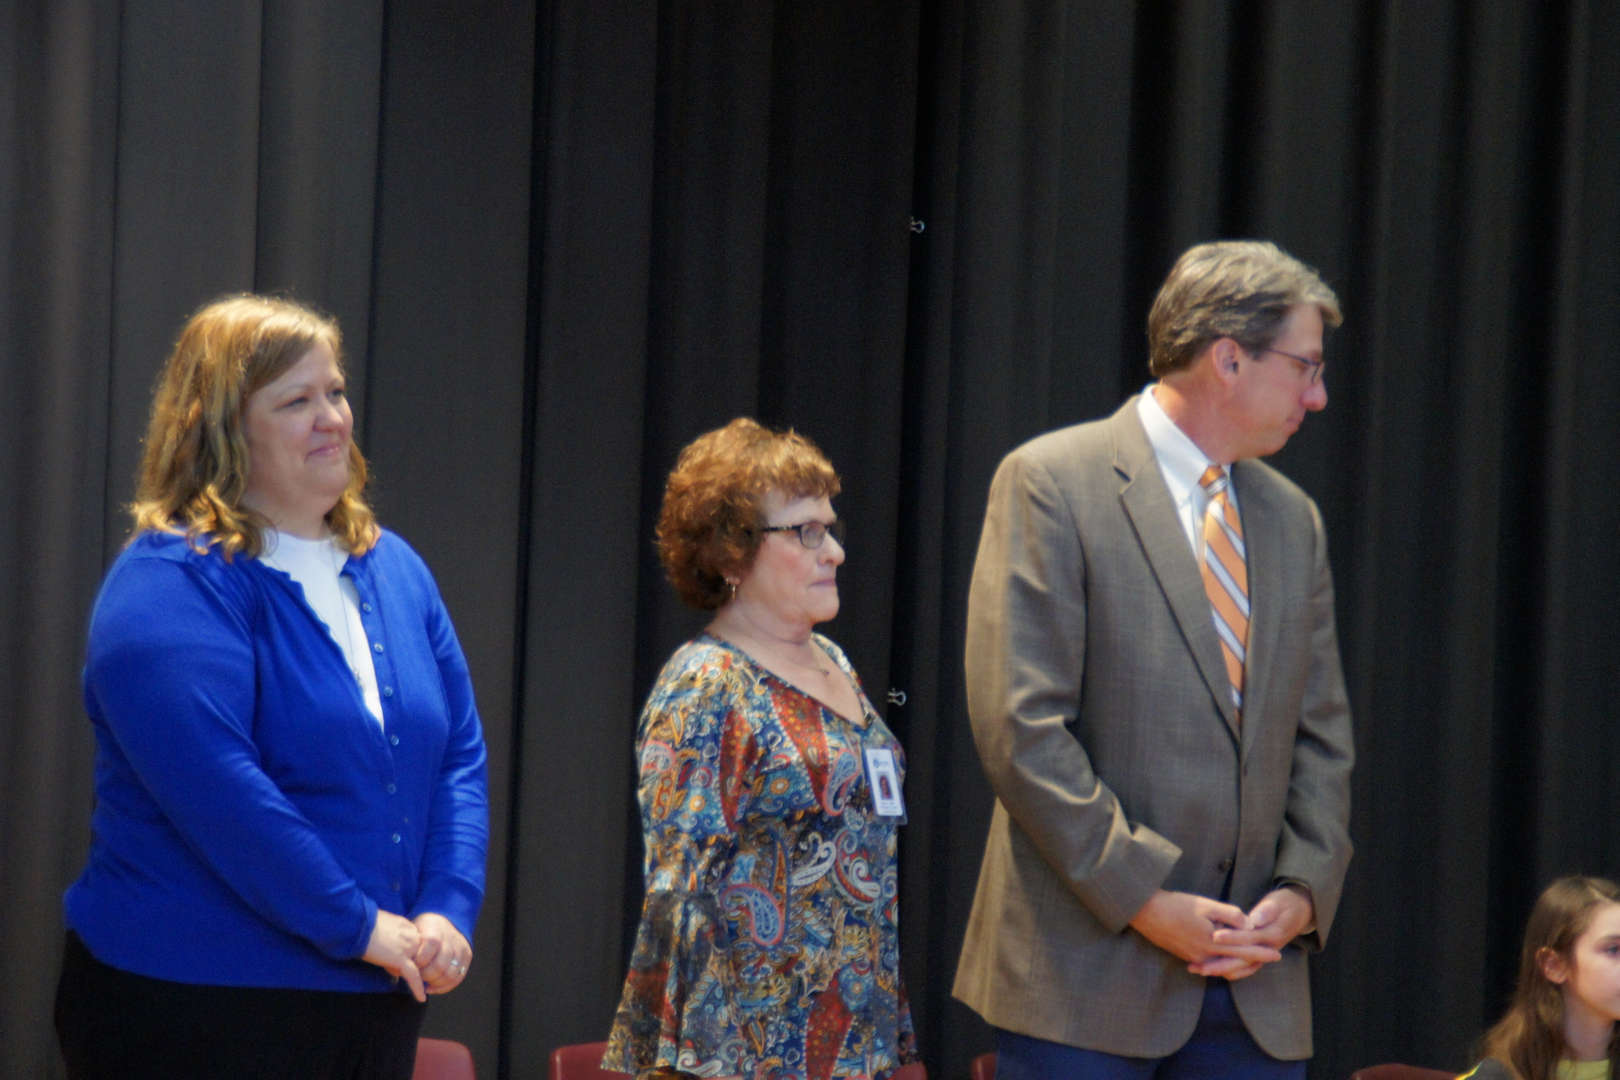 Judges: Mrs. Tracy Ingle, Mrs. Susan Smith, Dr. Eric Jones